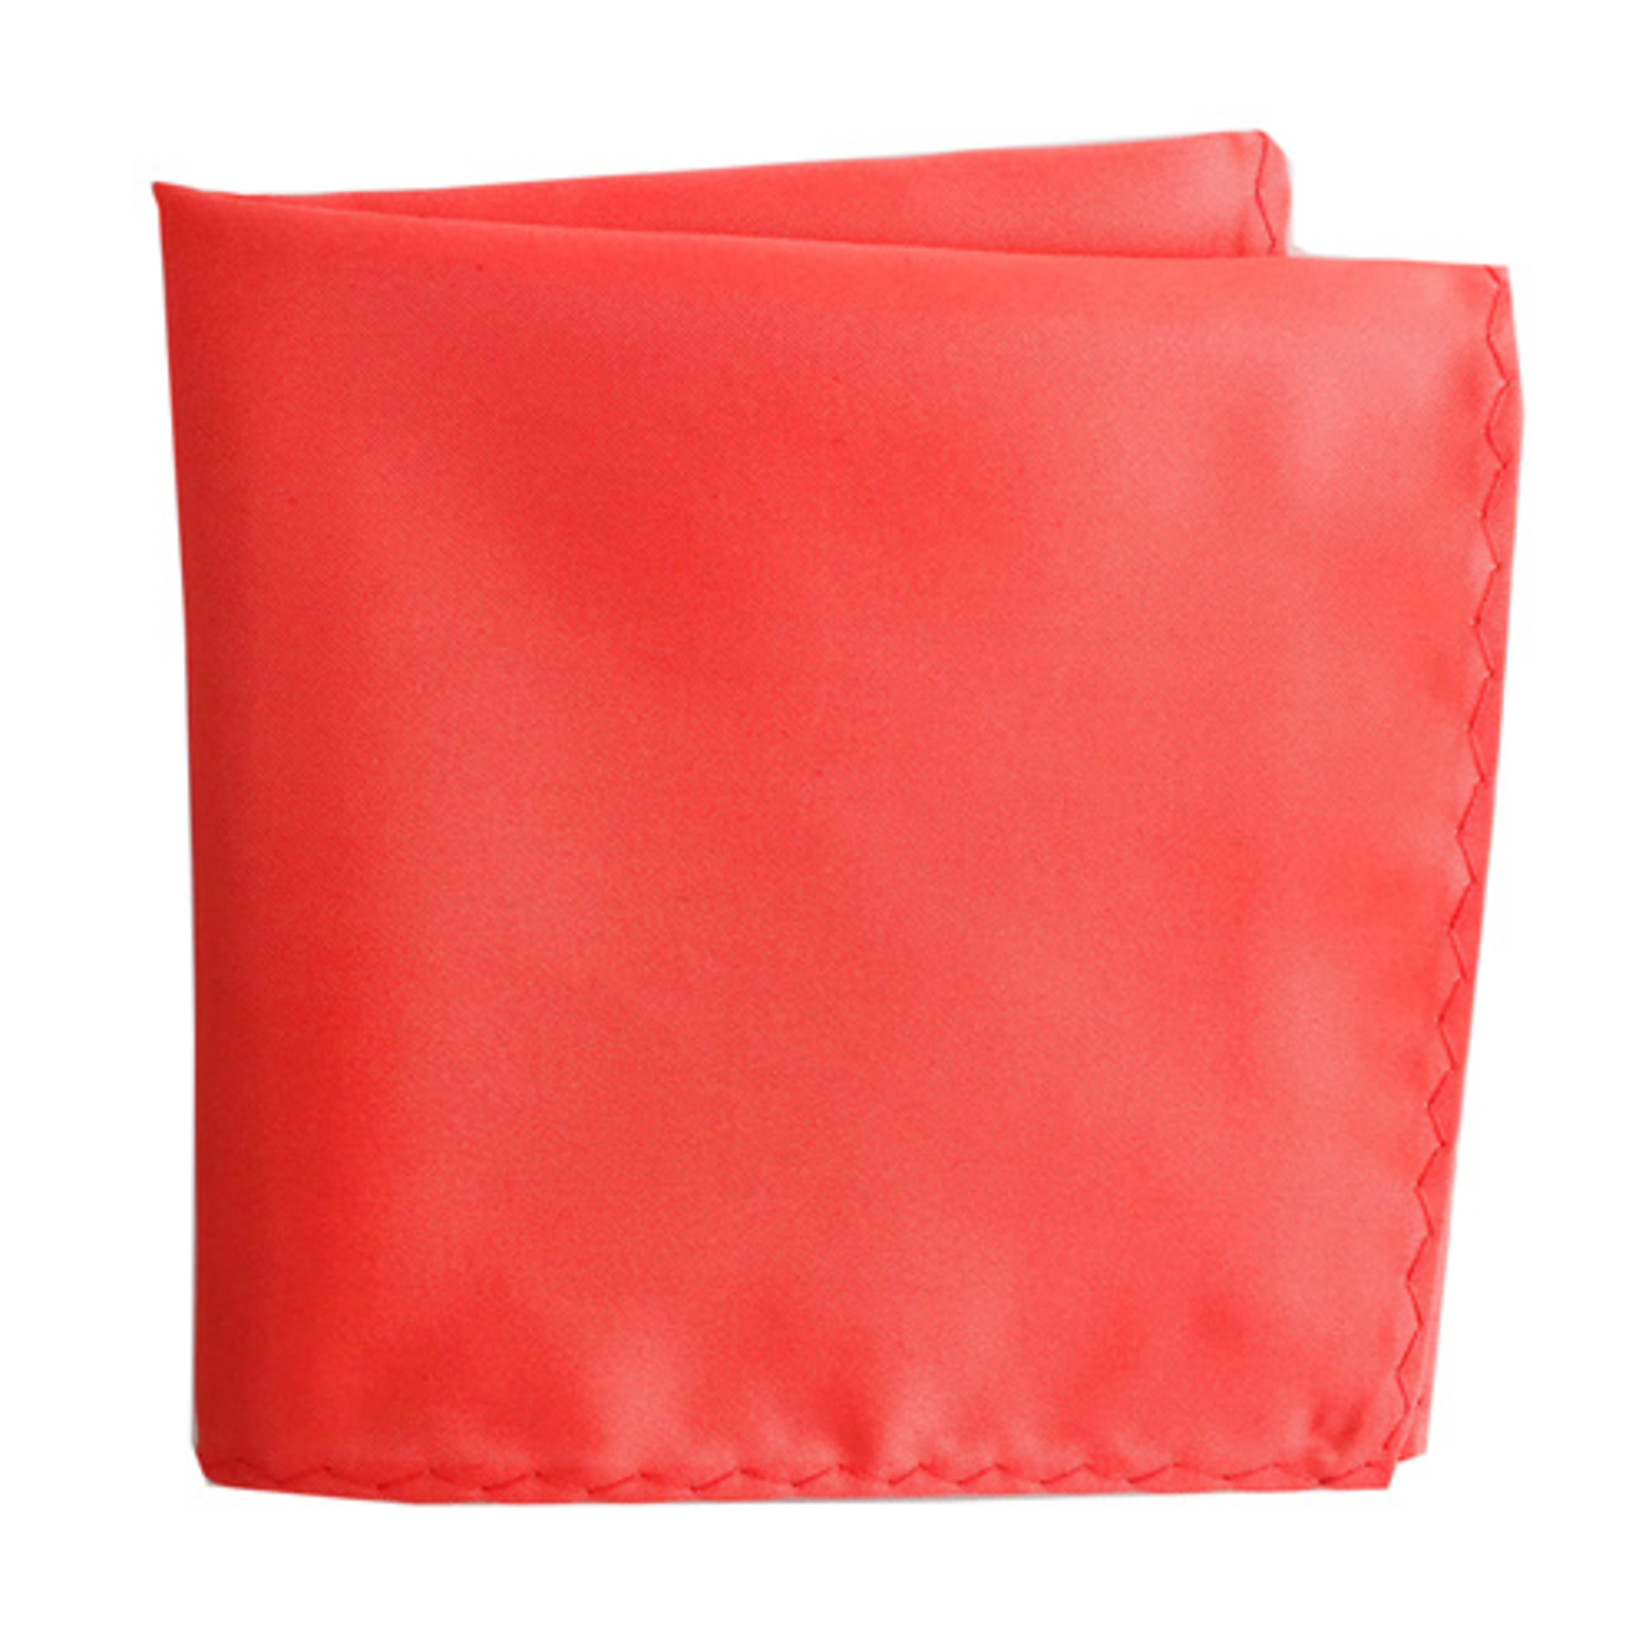 Knotz M100PSQ-44 Solid Coral Pocket Square